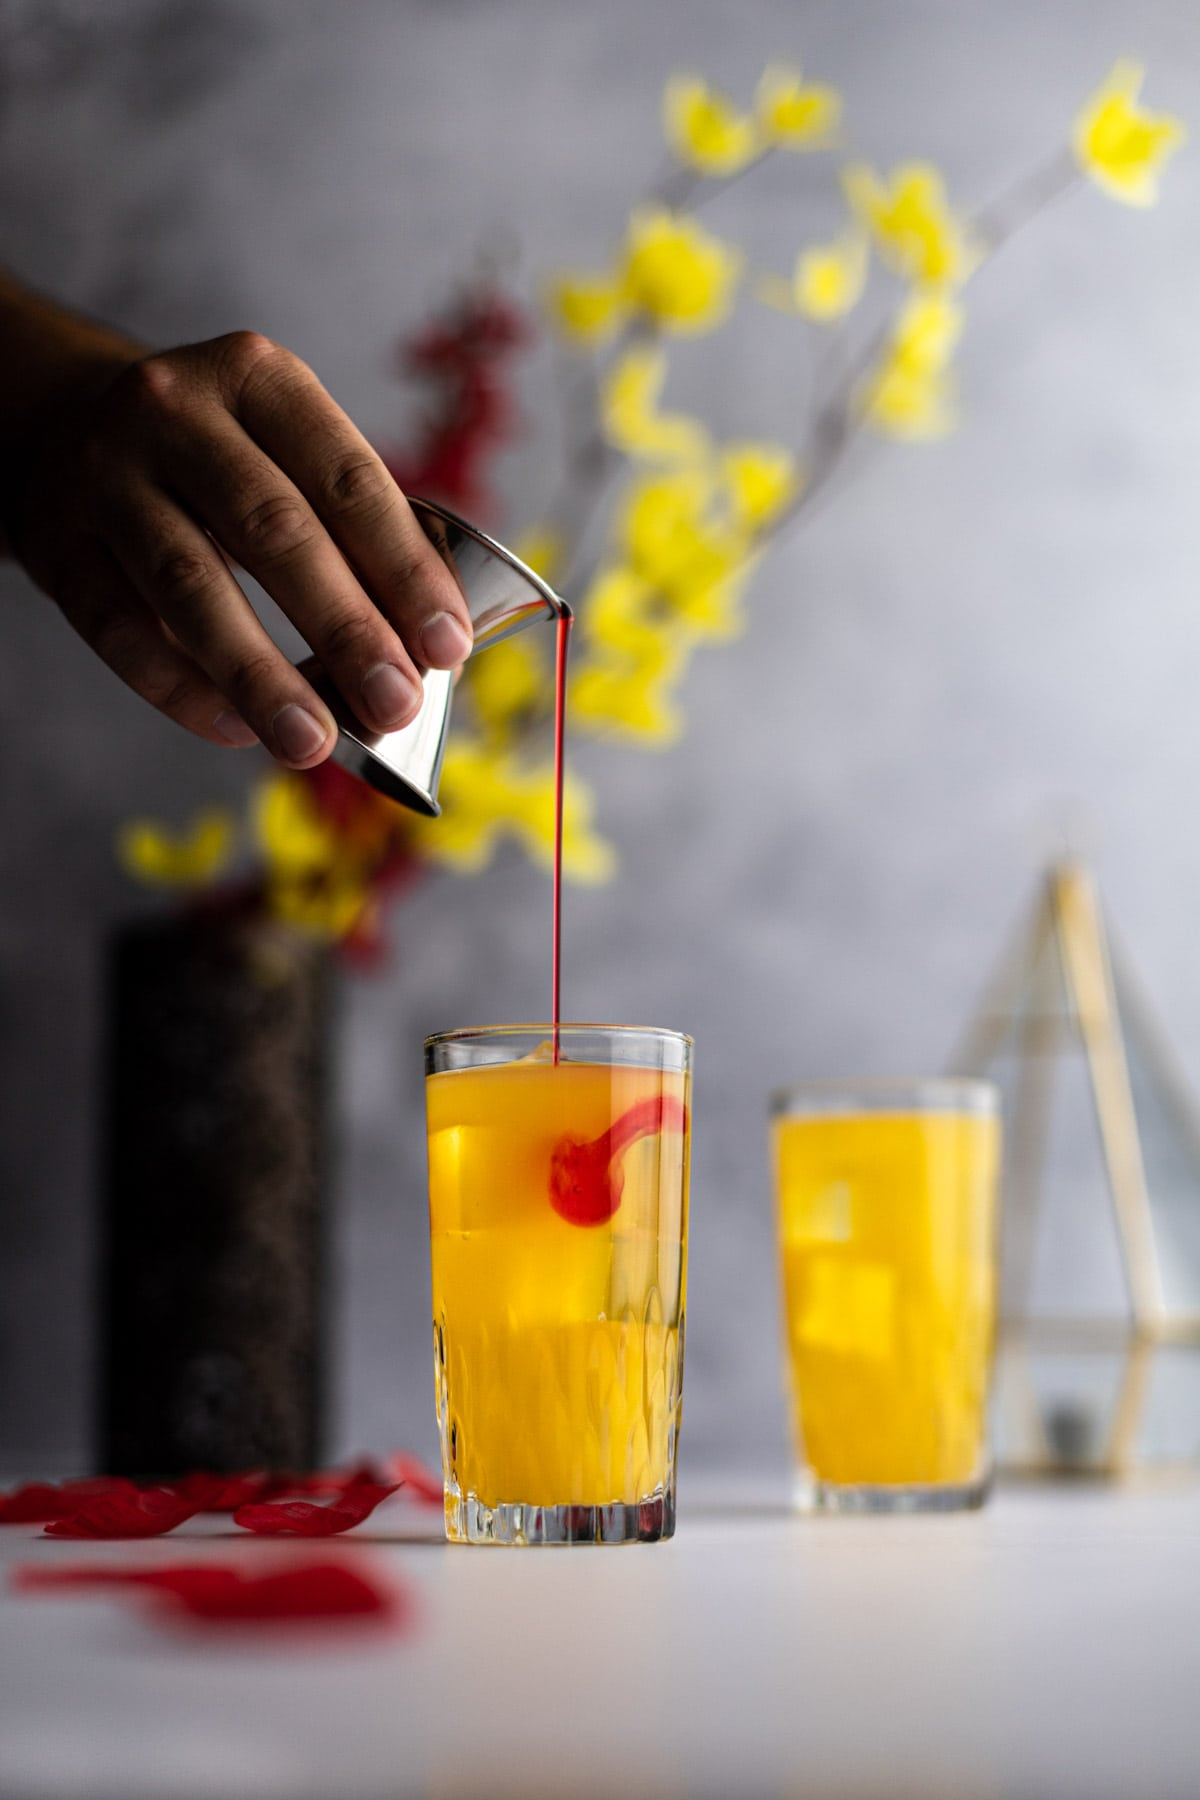 Hand holding a metal jigger with grenadine syrup being poured into an amaretto cocktail.